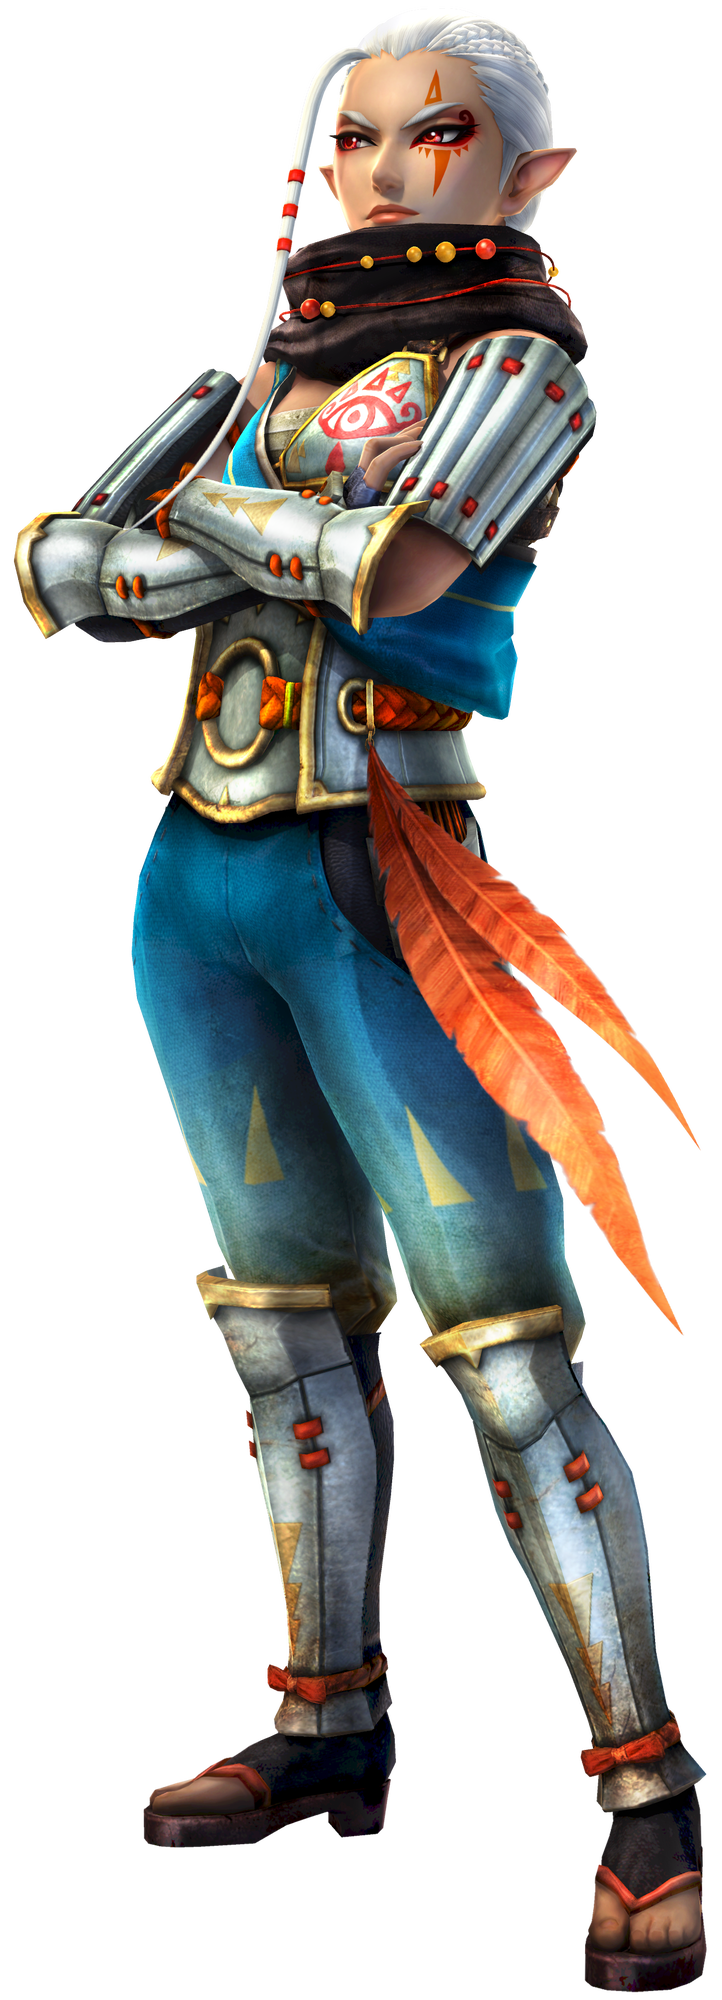 http://vignette4.wikia.nocookie.net/zelda/images/4/41/Impa_Hyrule_Warriors.png/revision/latest?cb=20140610203350